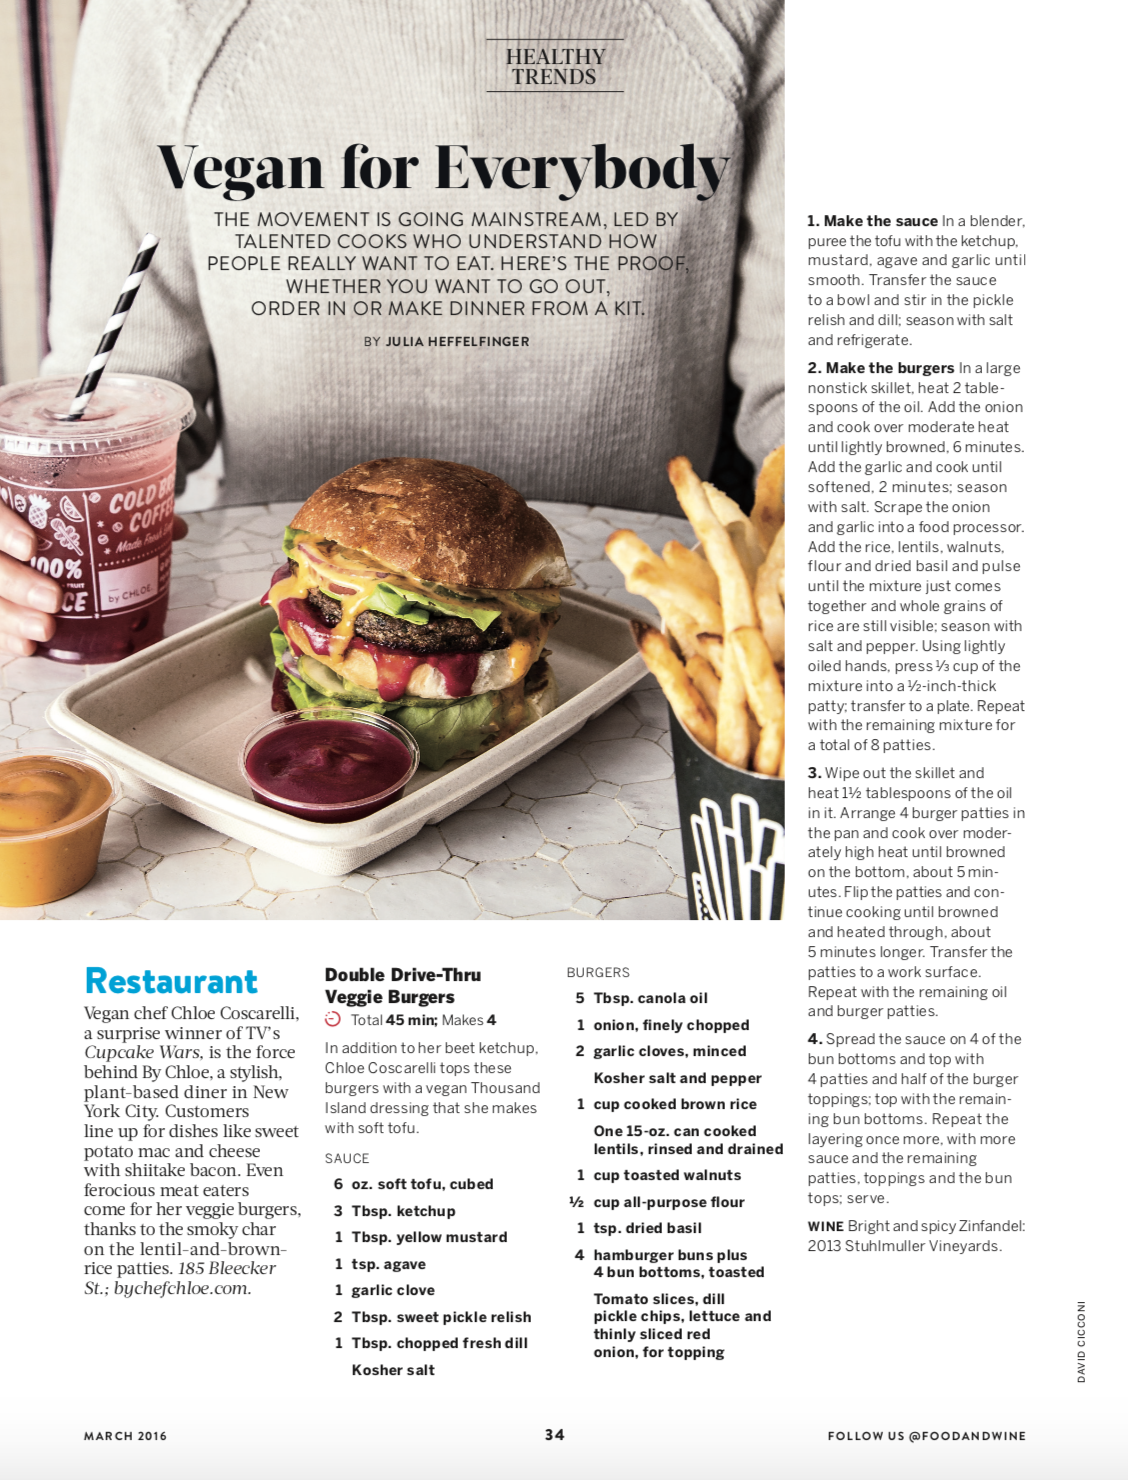 FOOD & WINE MAGAZINE  Vegan for Everybody, March 2016